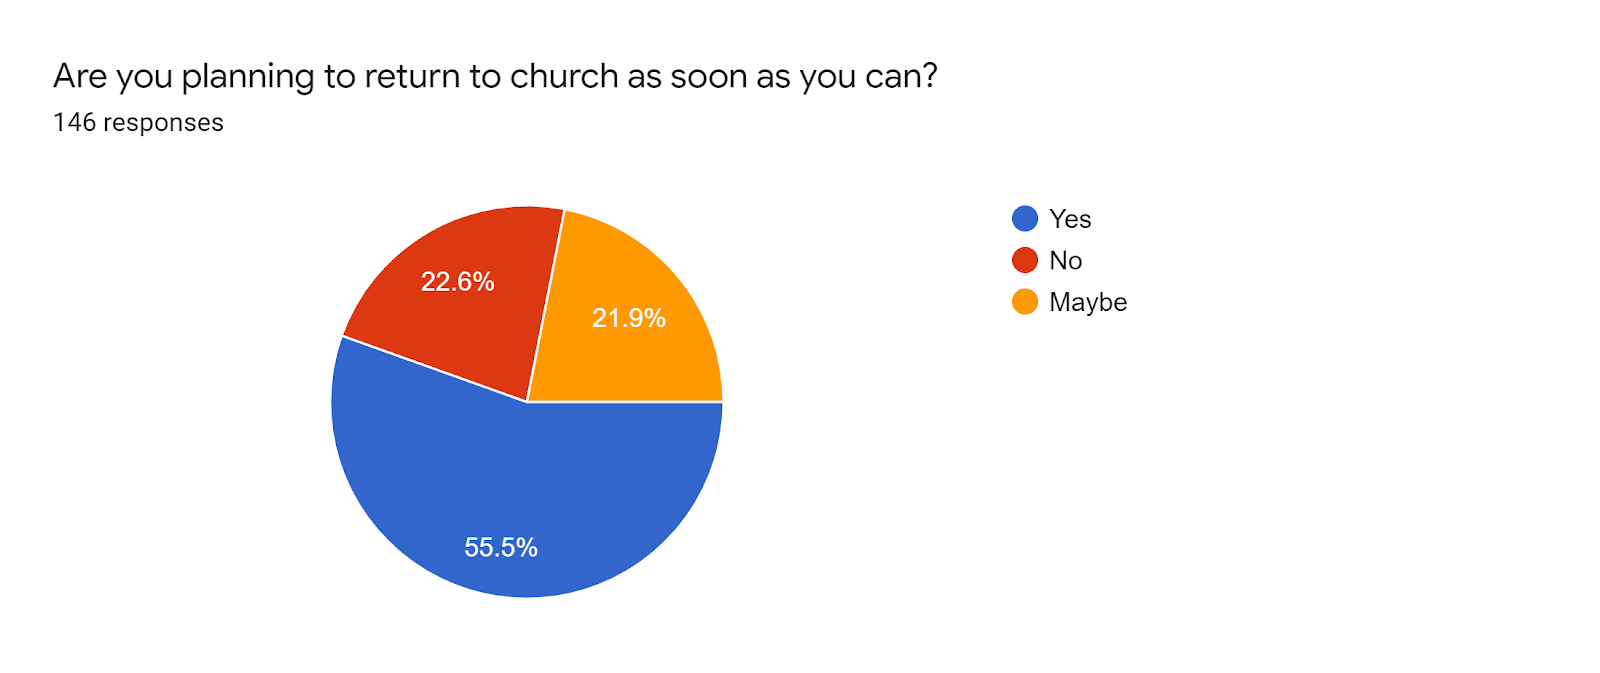 Are you planning to return to church as soon as you can?. 55.5% say yes.